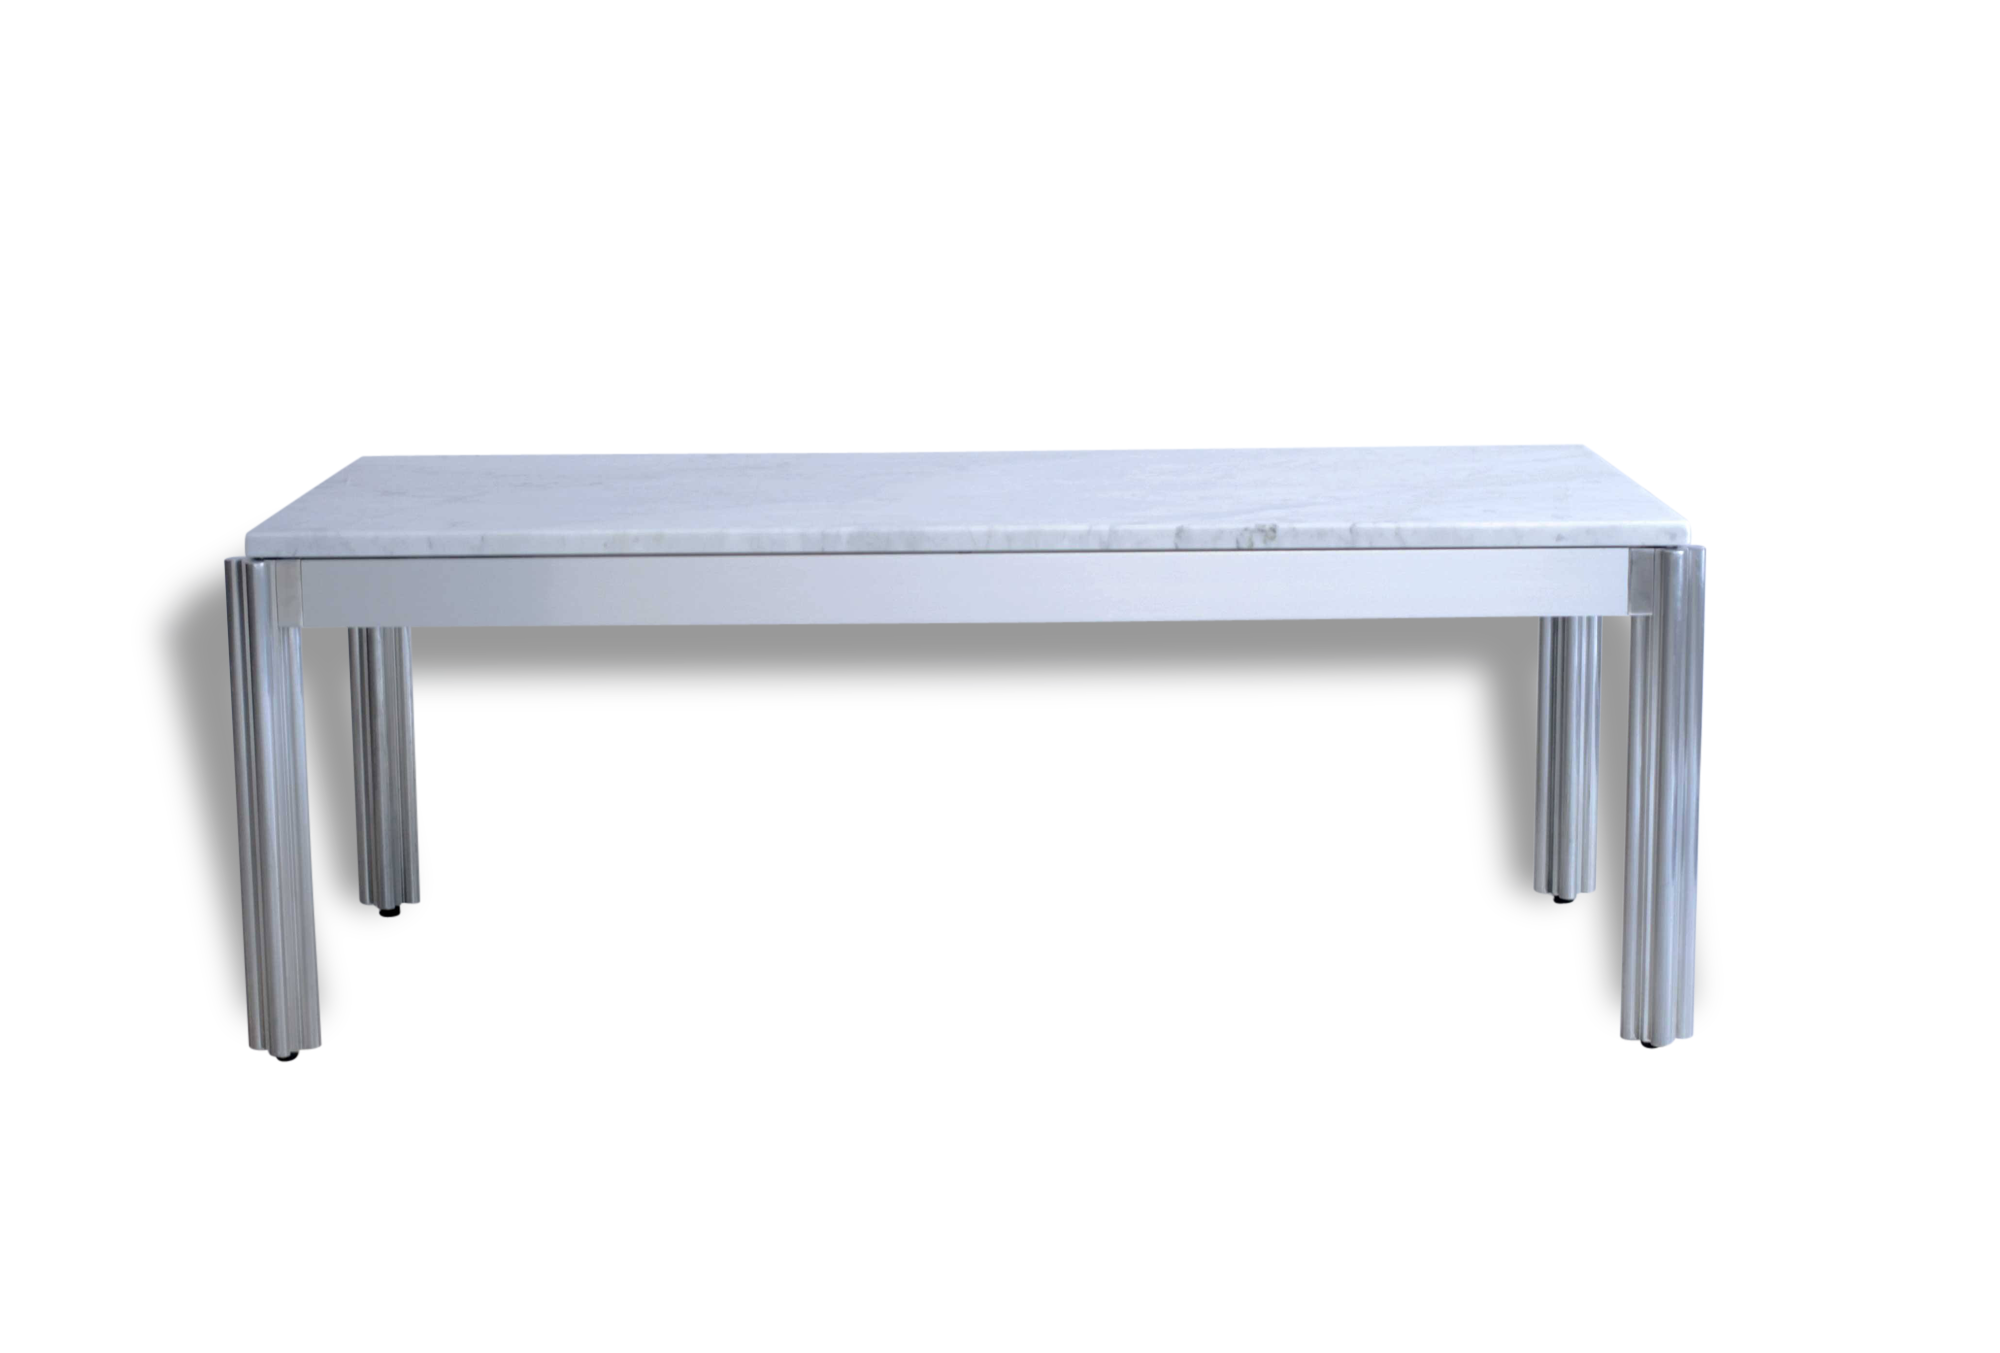 Table Basse George Ciancimino Mobilier International Années 70